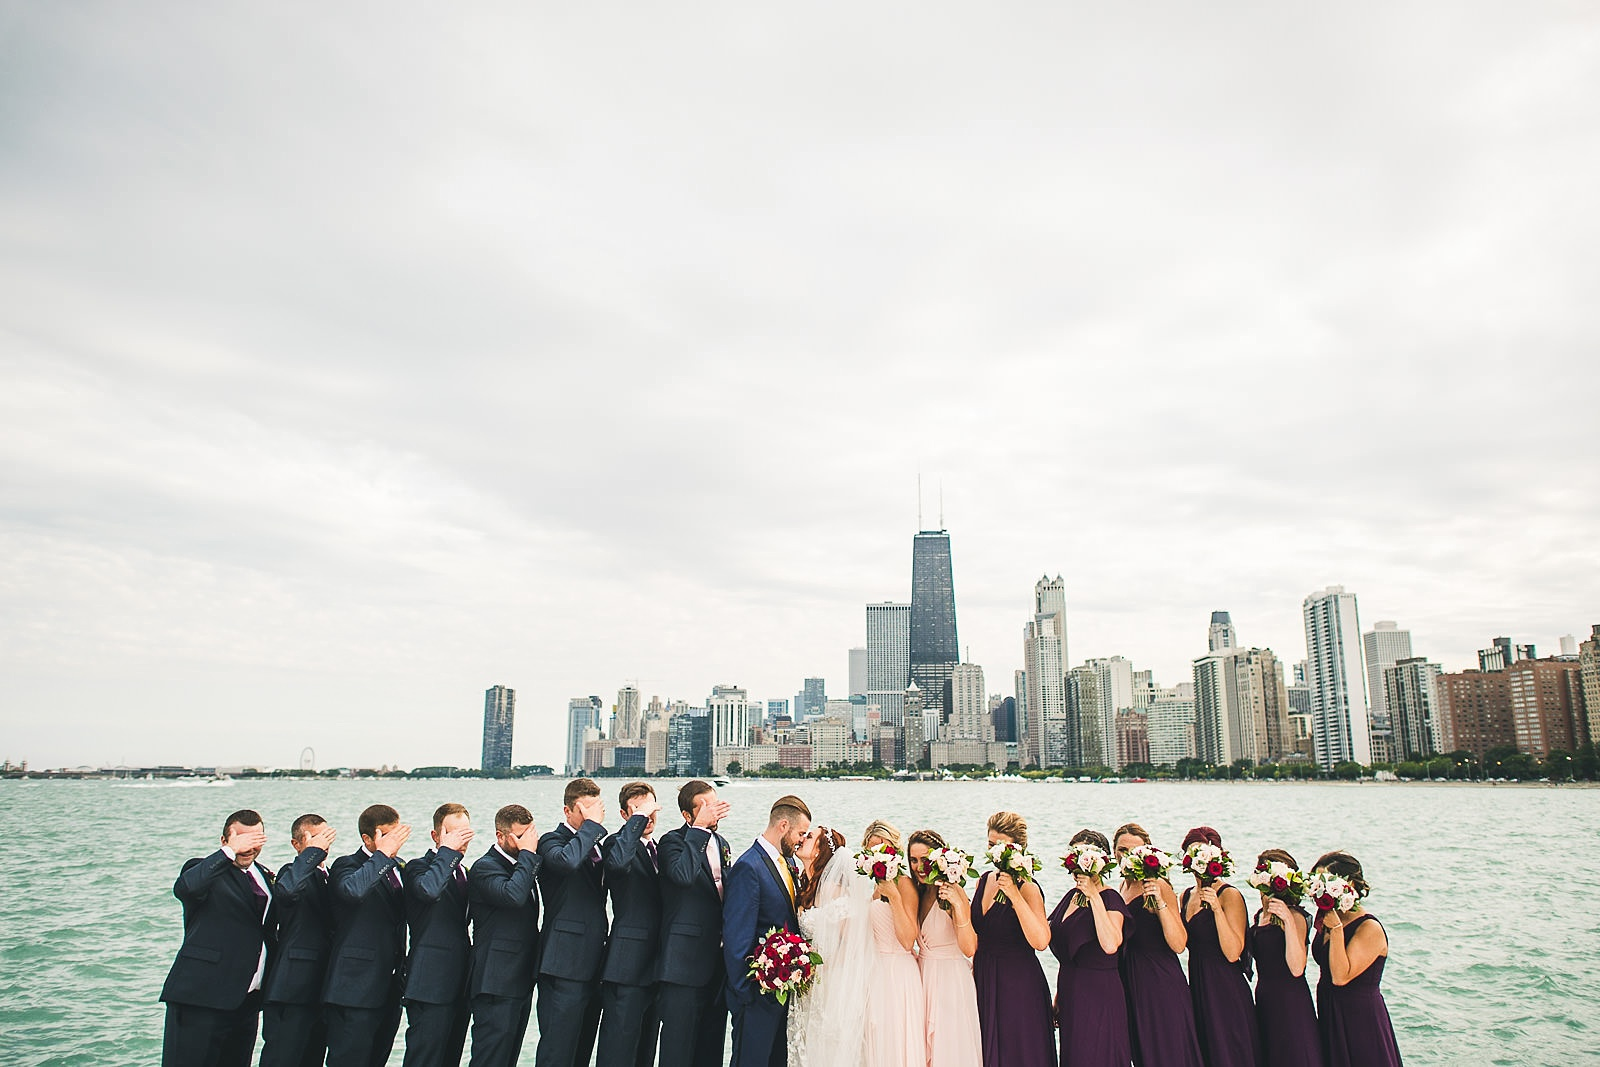 44 big bridal party photo - Hilton Chicago Wedding Photographer // Sarah + Aaron